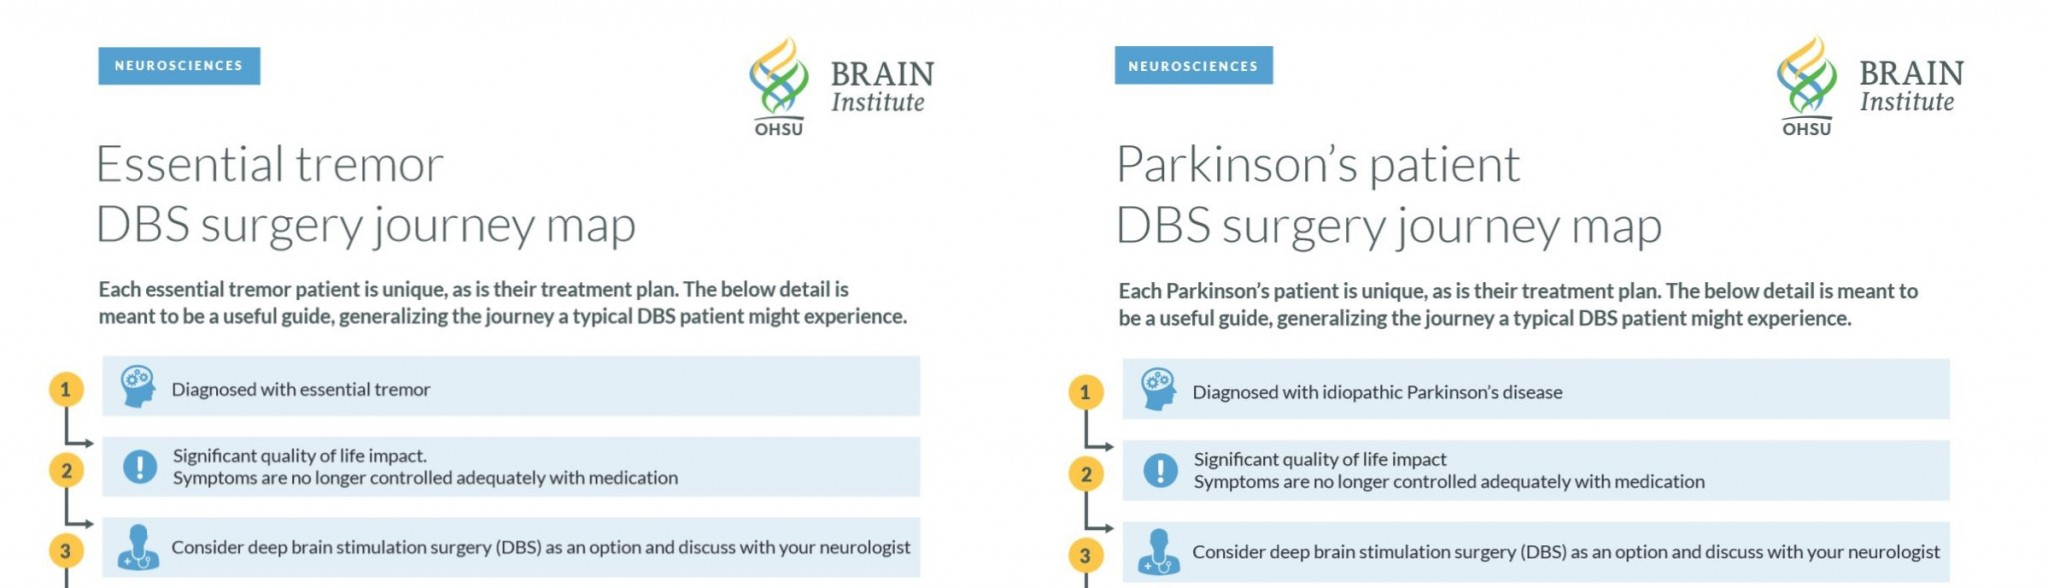 OHSU's deep brain stimulation website includes guides to the DBS process for patients with Parkinson's disease or essential tremor, including those who live near OHSU or far away.